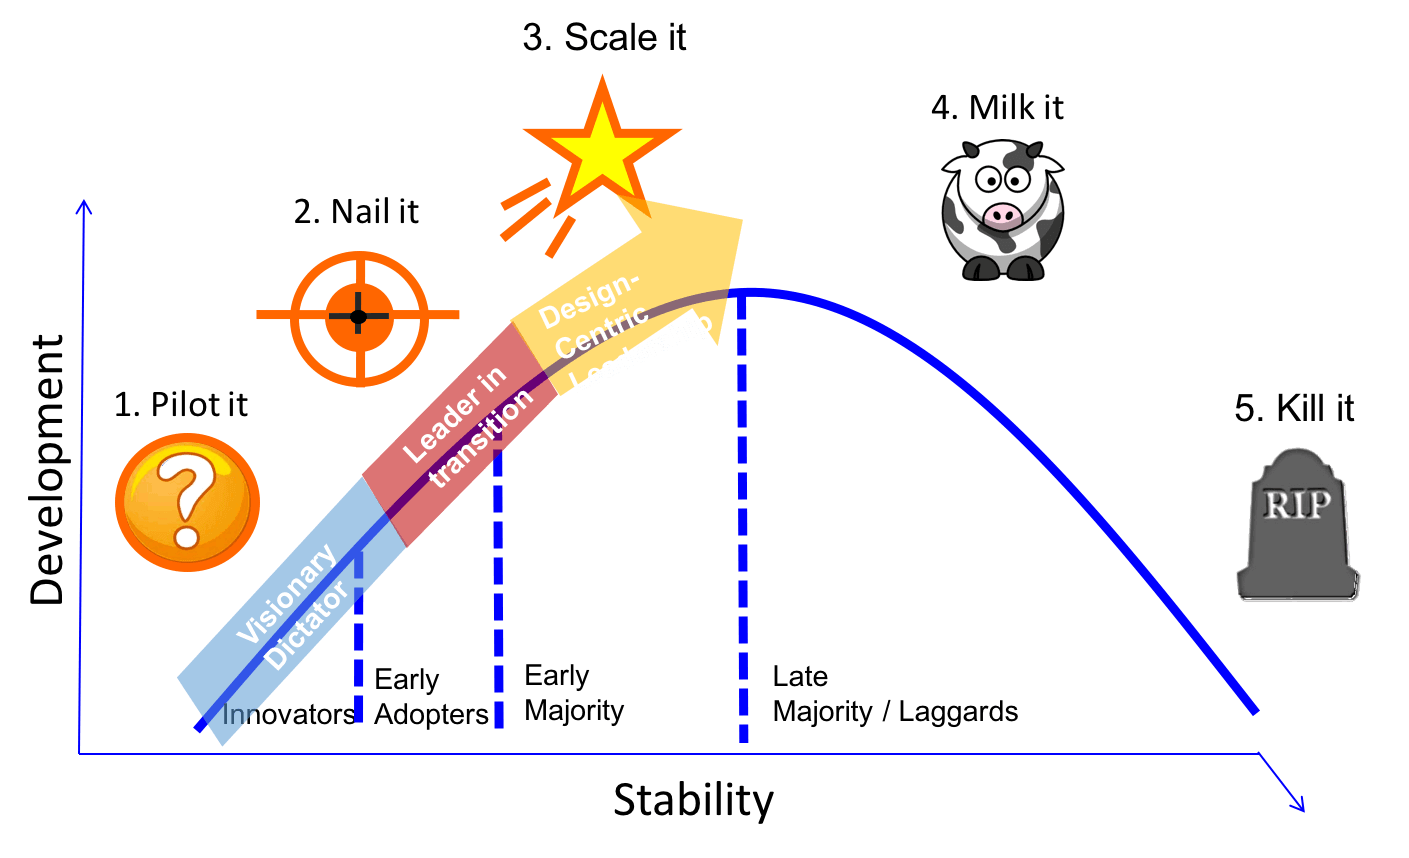 organizational leadership the journey As outlined in the attached lgo leadership journey roadmap, 15317 begins  with a weekly leadership seminar that introduces historical perspectives of.